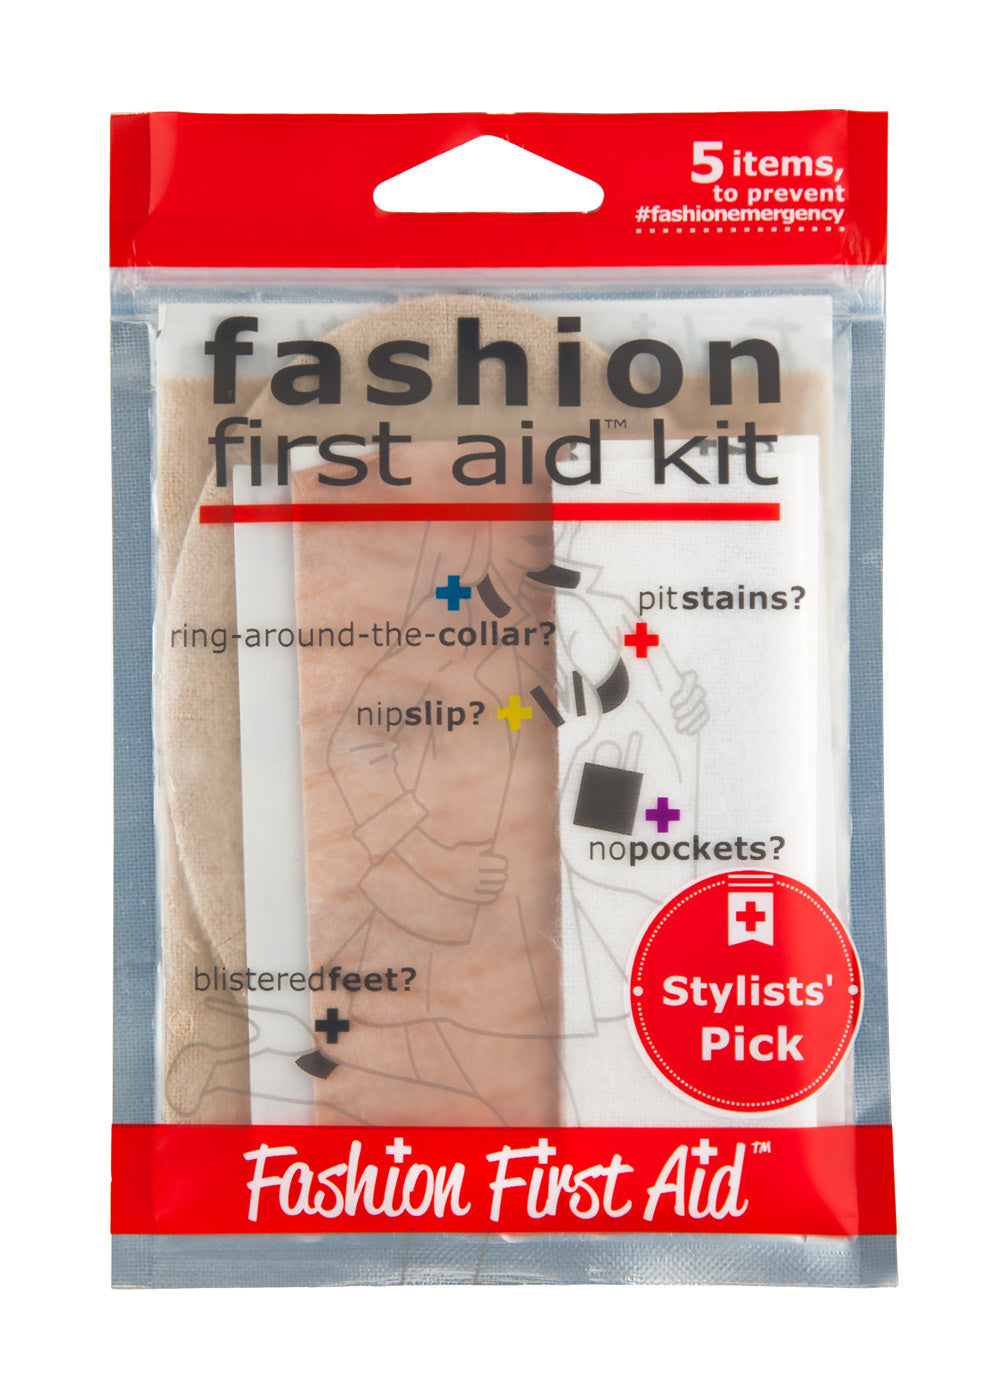 Fashion first aid kit- first aid fashion emergency kit